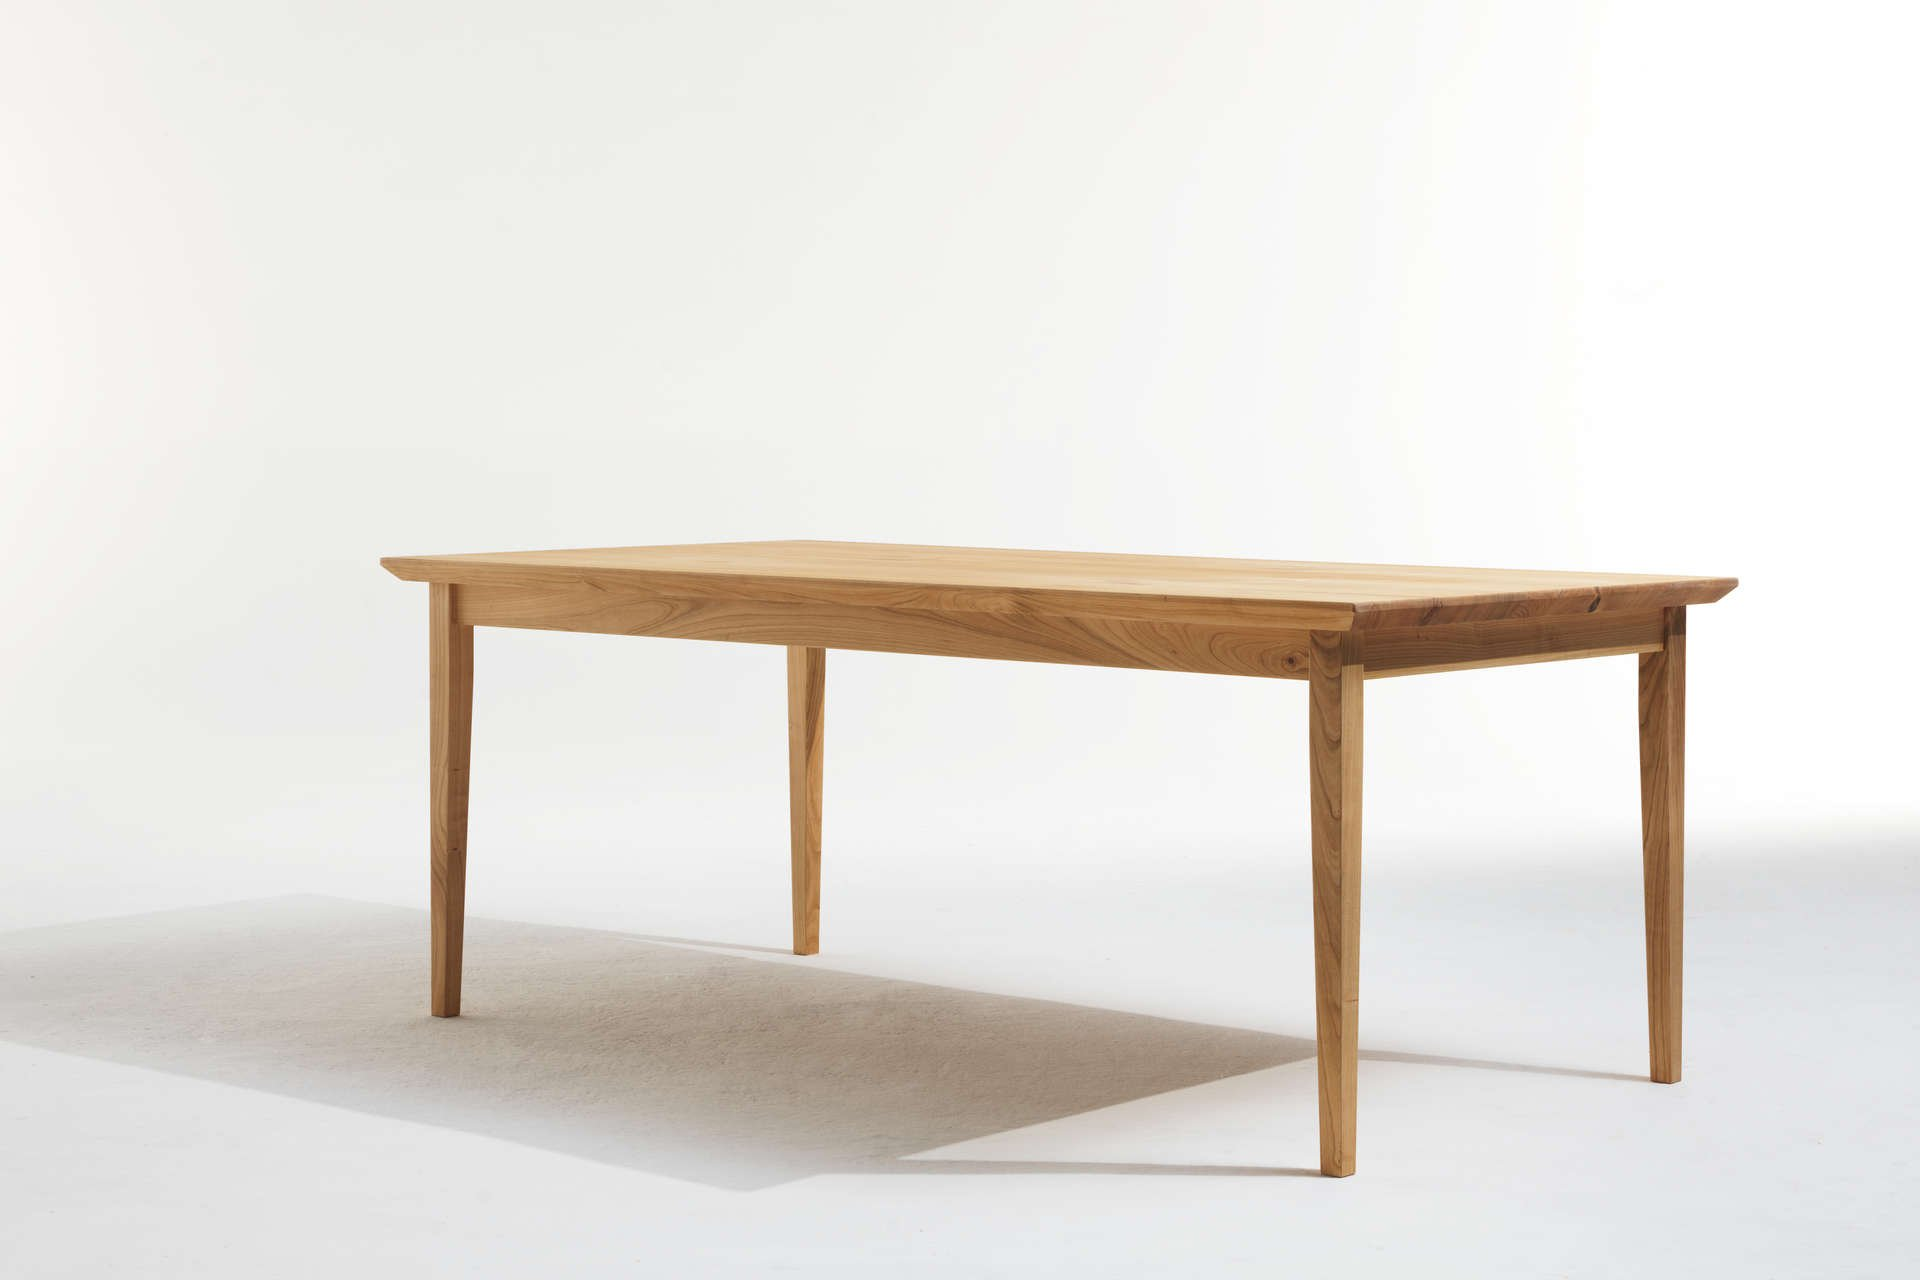 Tischplatte kirschenholz design thomas gruber back to for Design tischplatte